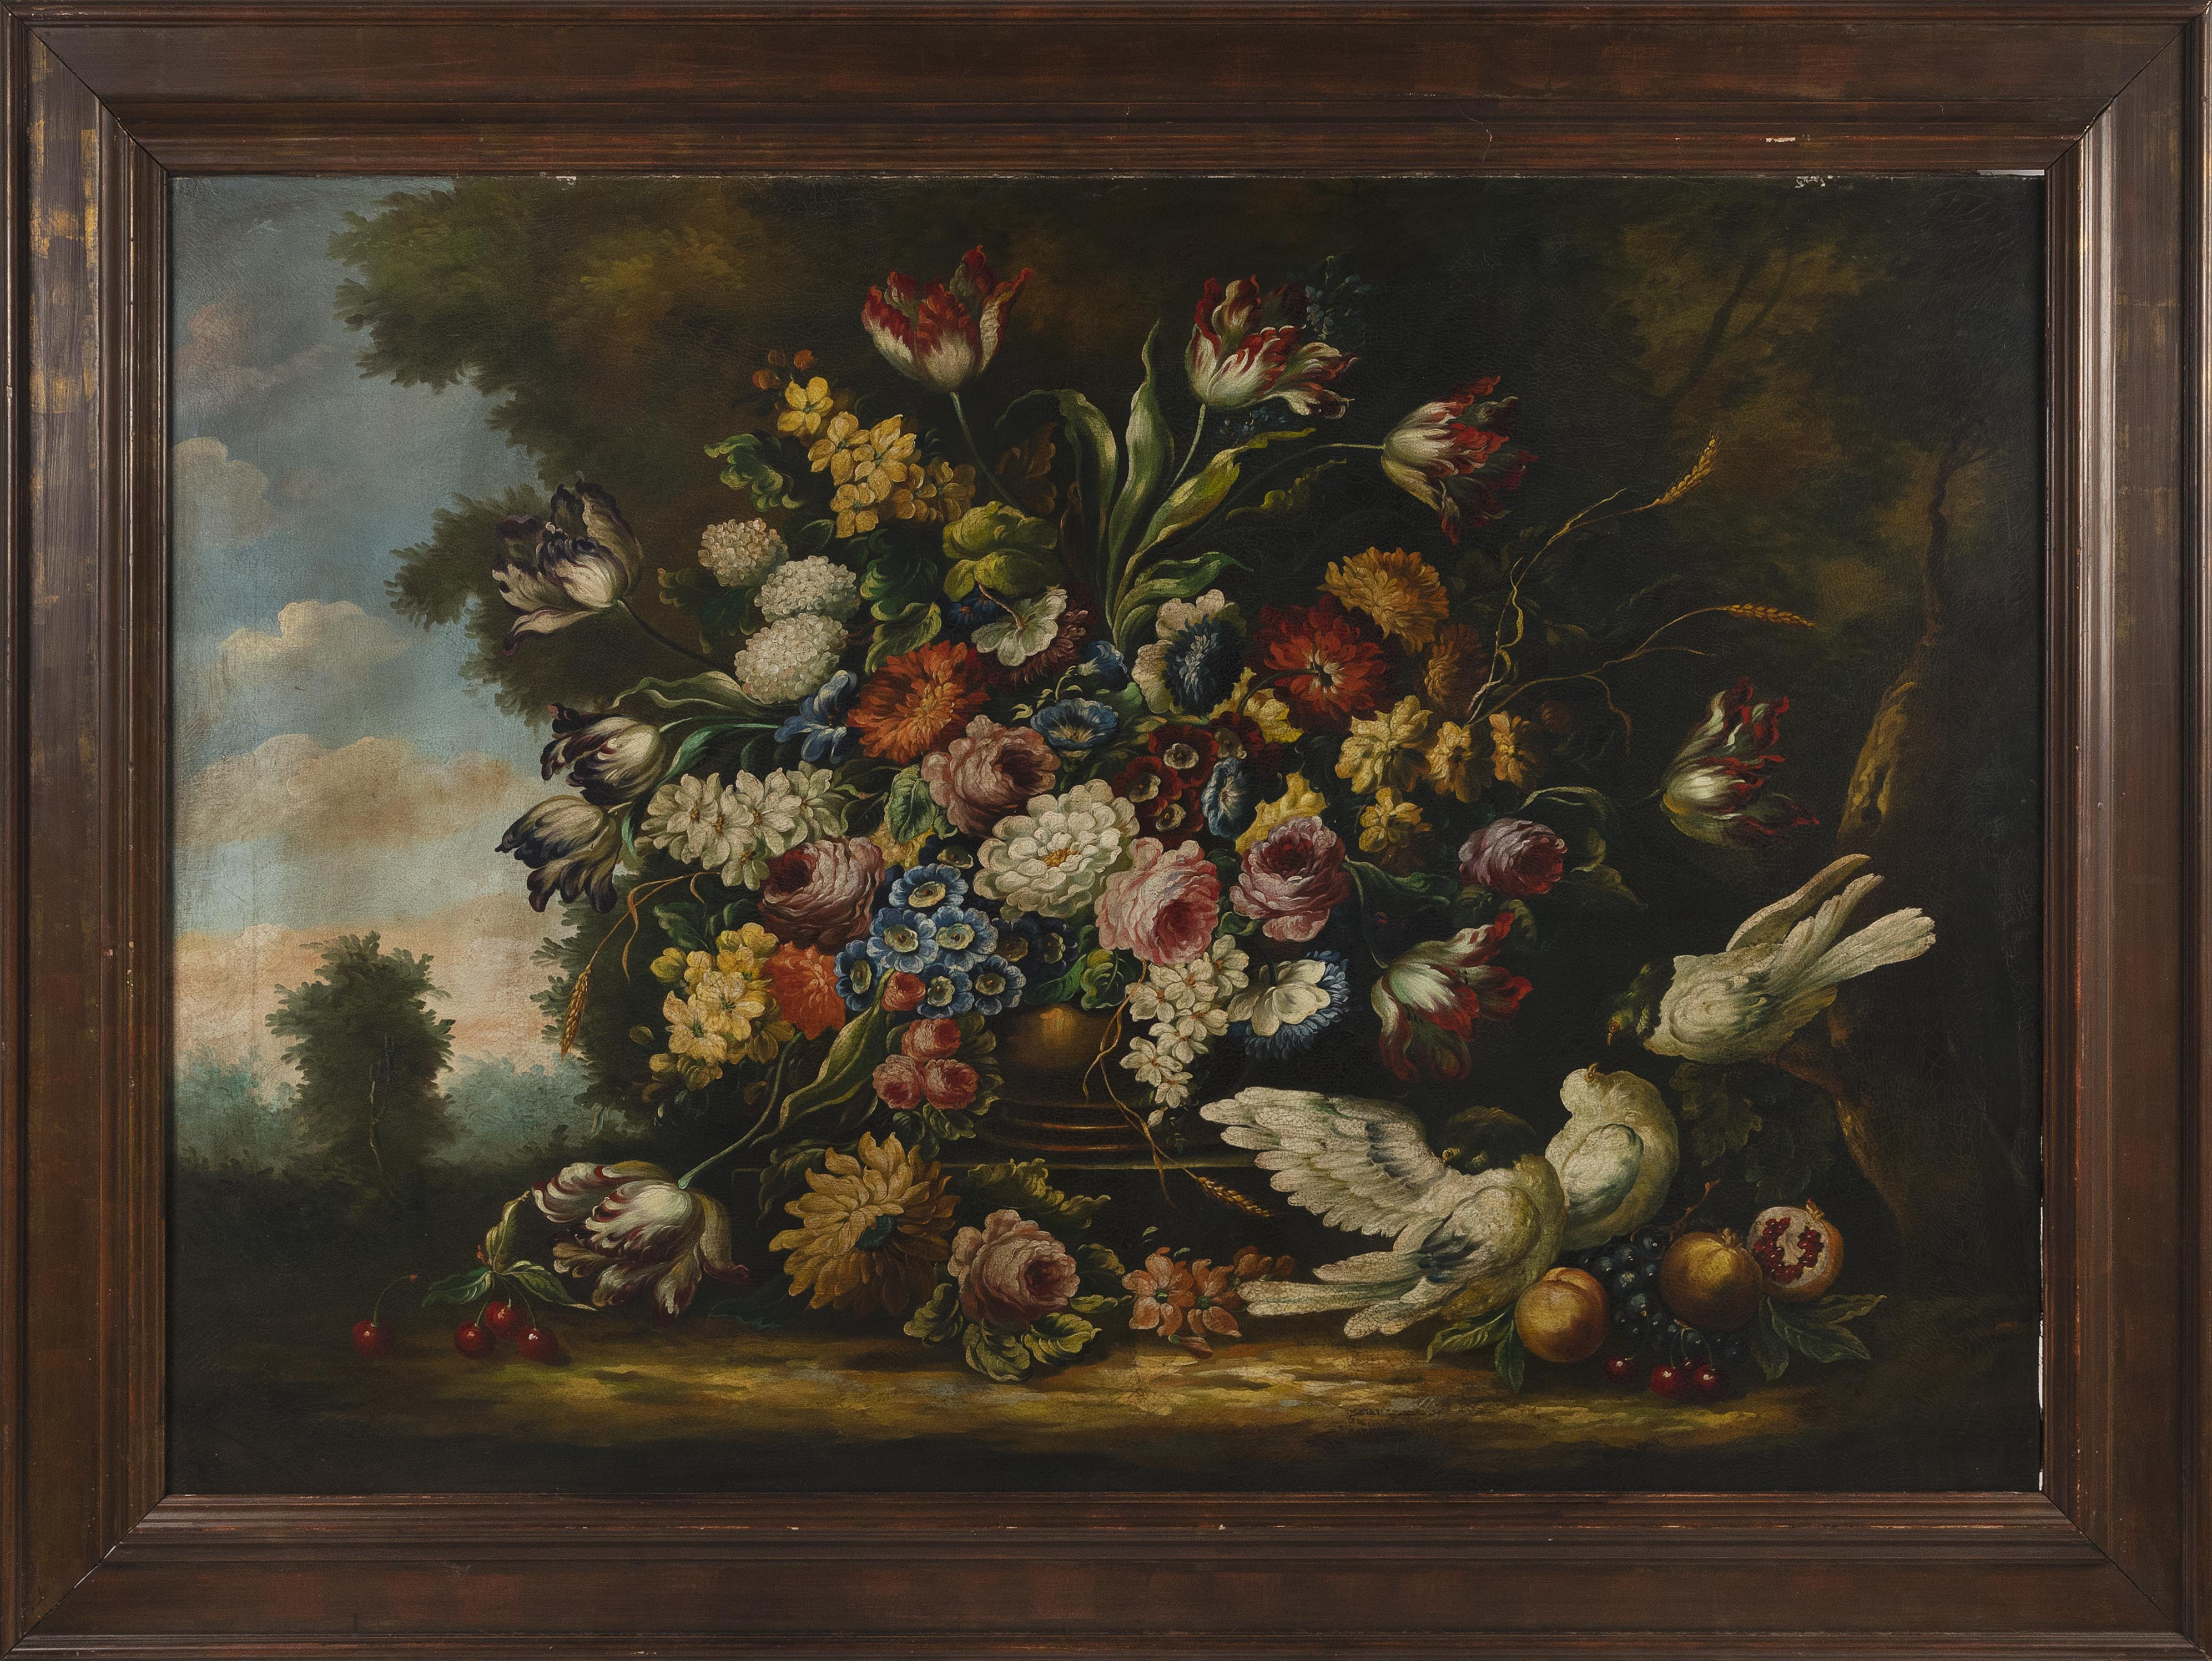 DUTCH SCHOOL (Early 20th Century,), Oppulent floral still life with birds., Oil on canvas, 39